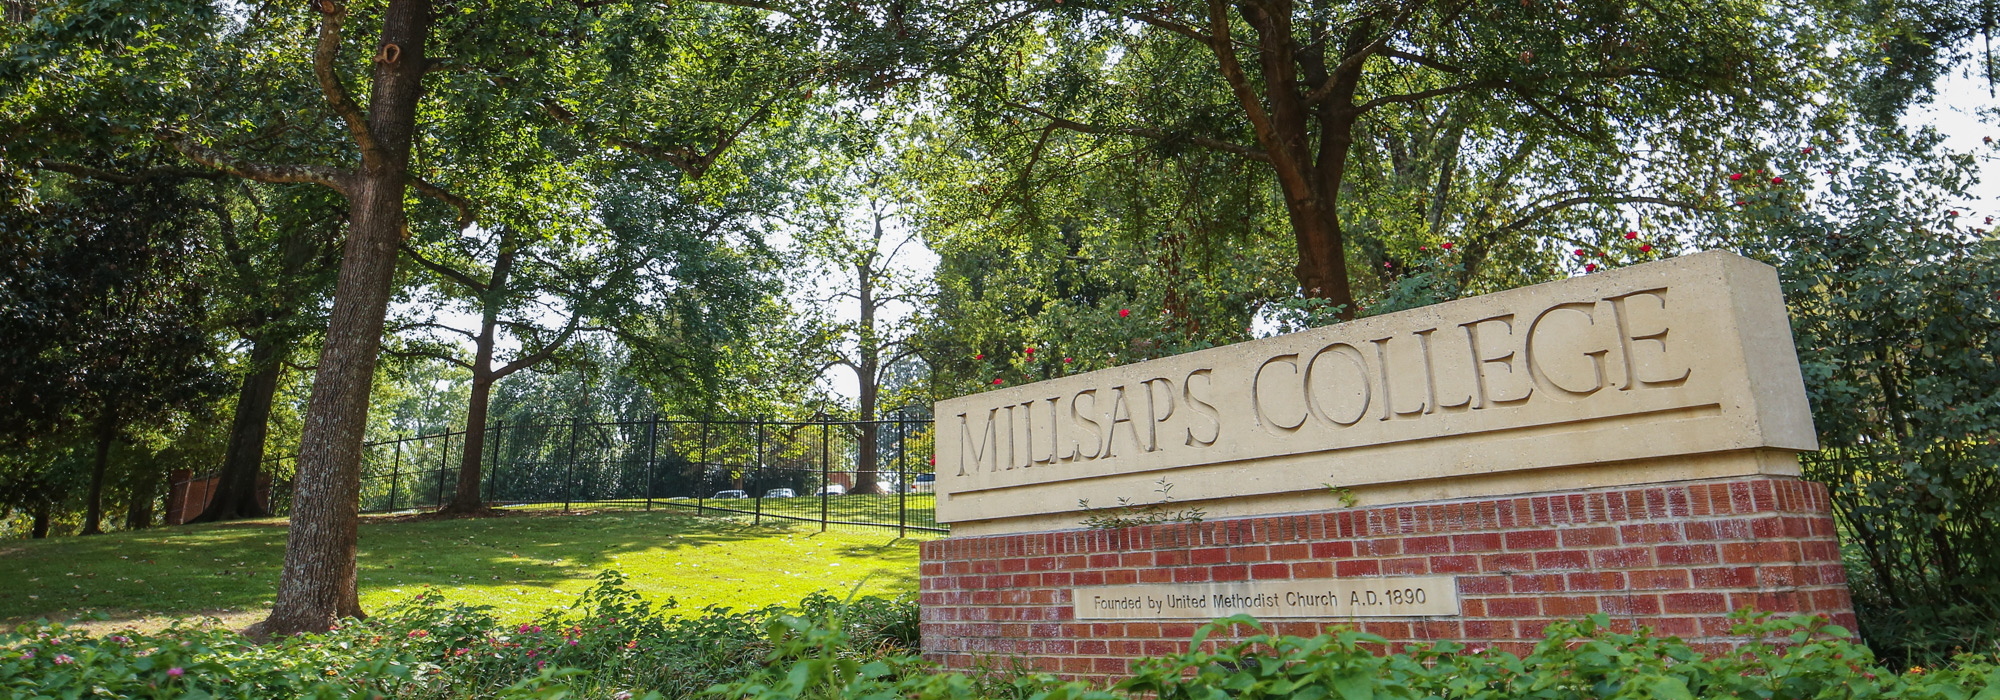 Millsaps College welcome